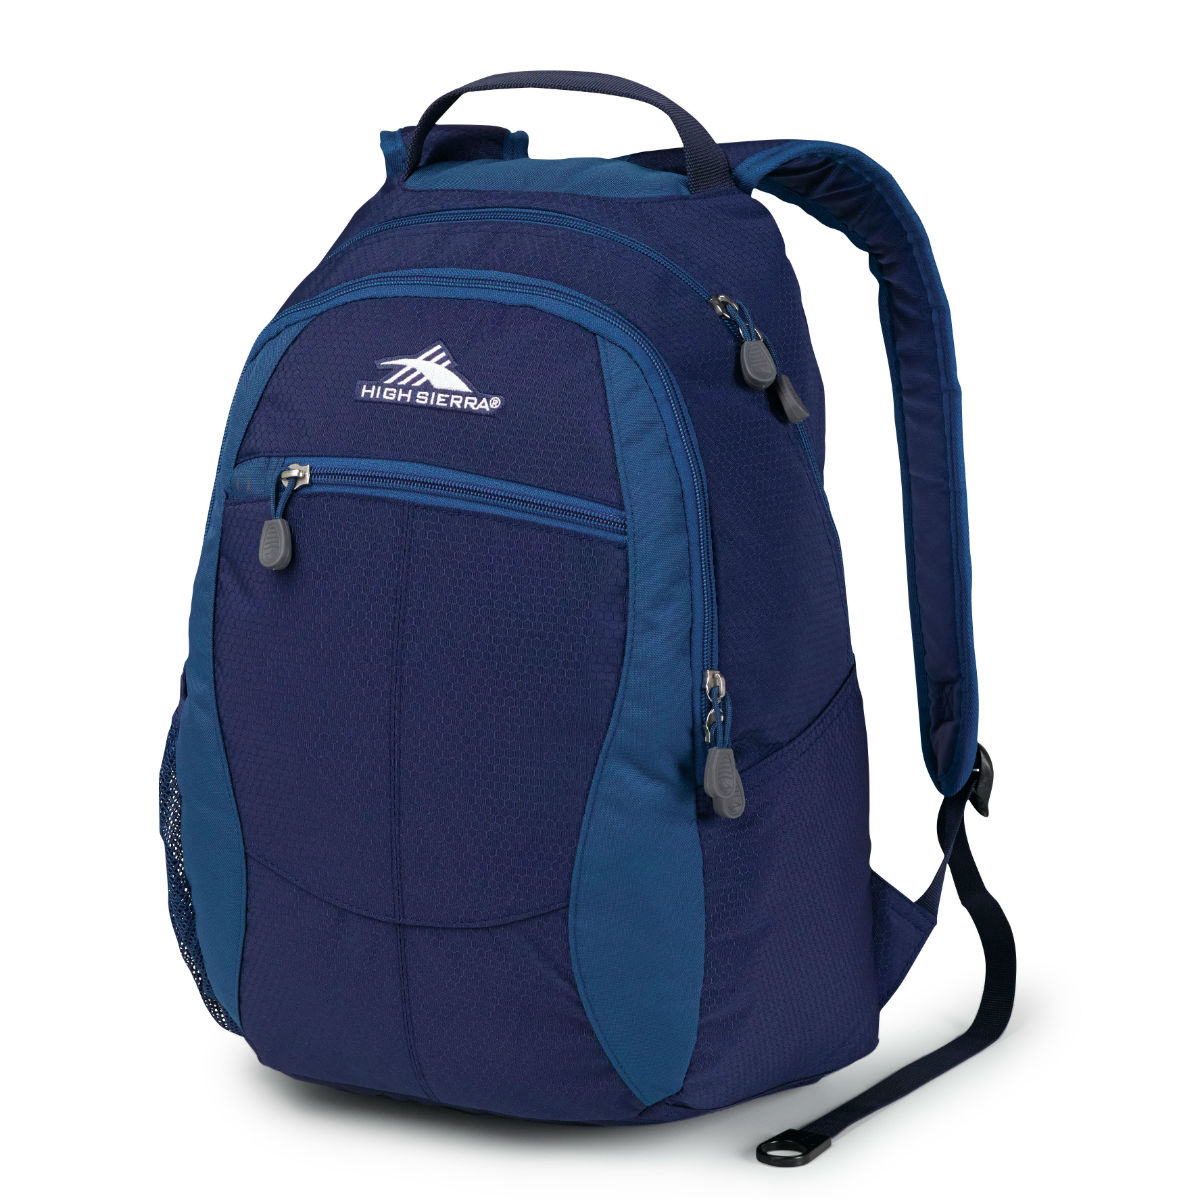 Good Backpacks For High School fMlNwxOa